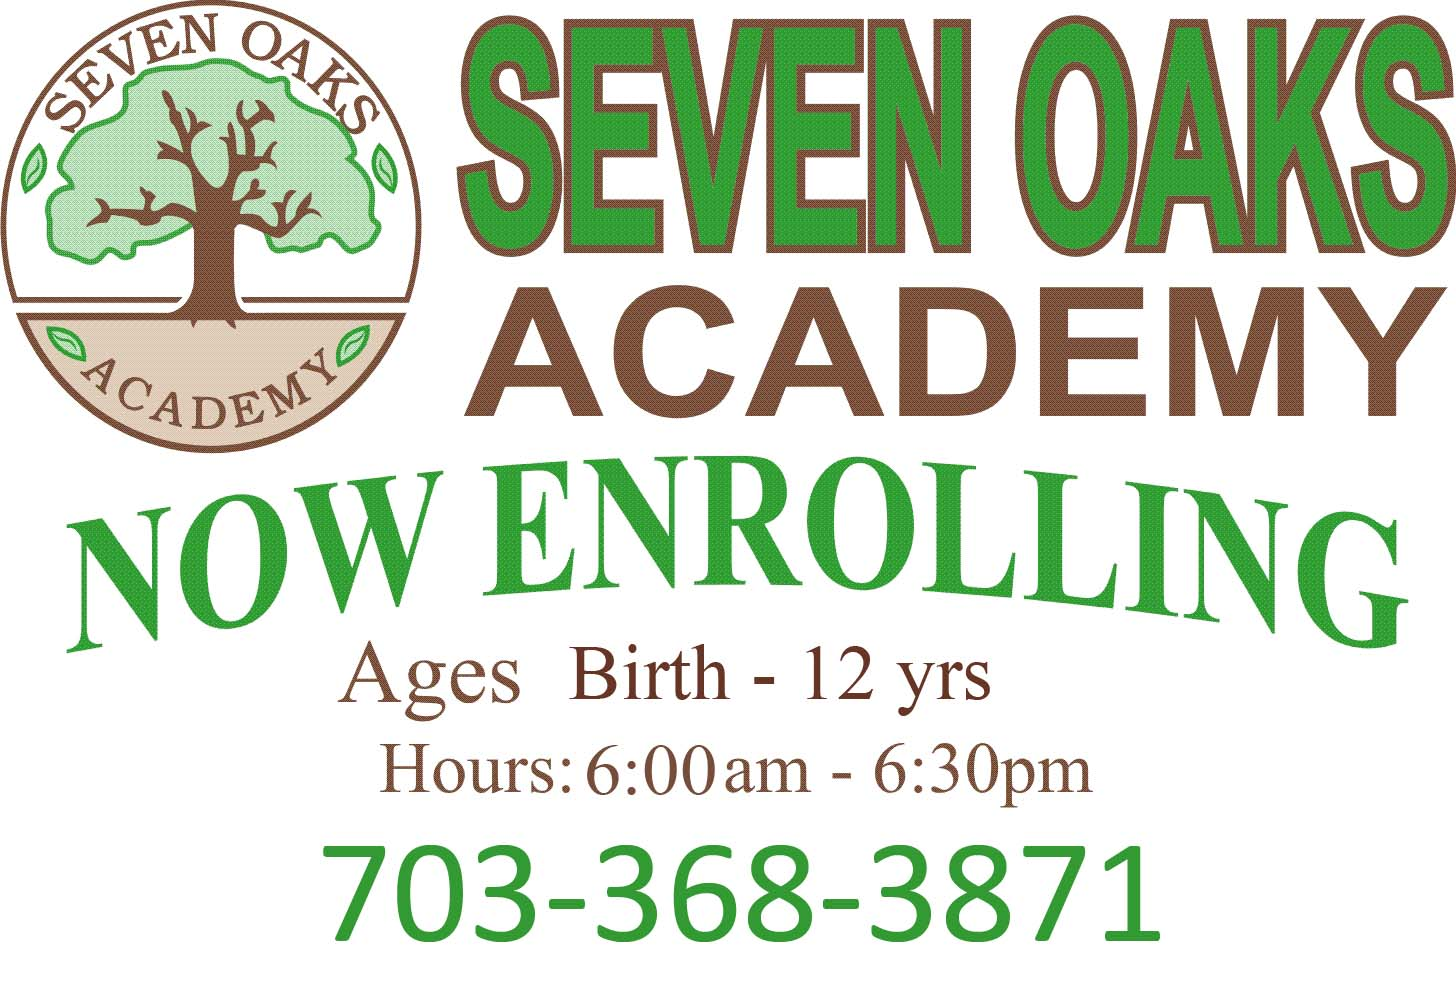 Seven Oaks Academy Now Enrolling Ages Birth to 12 Years